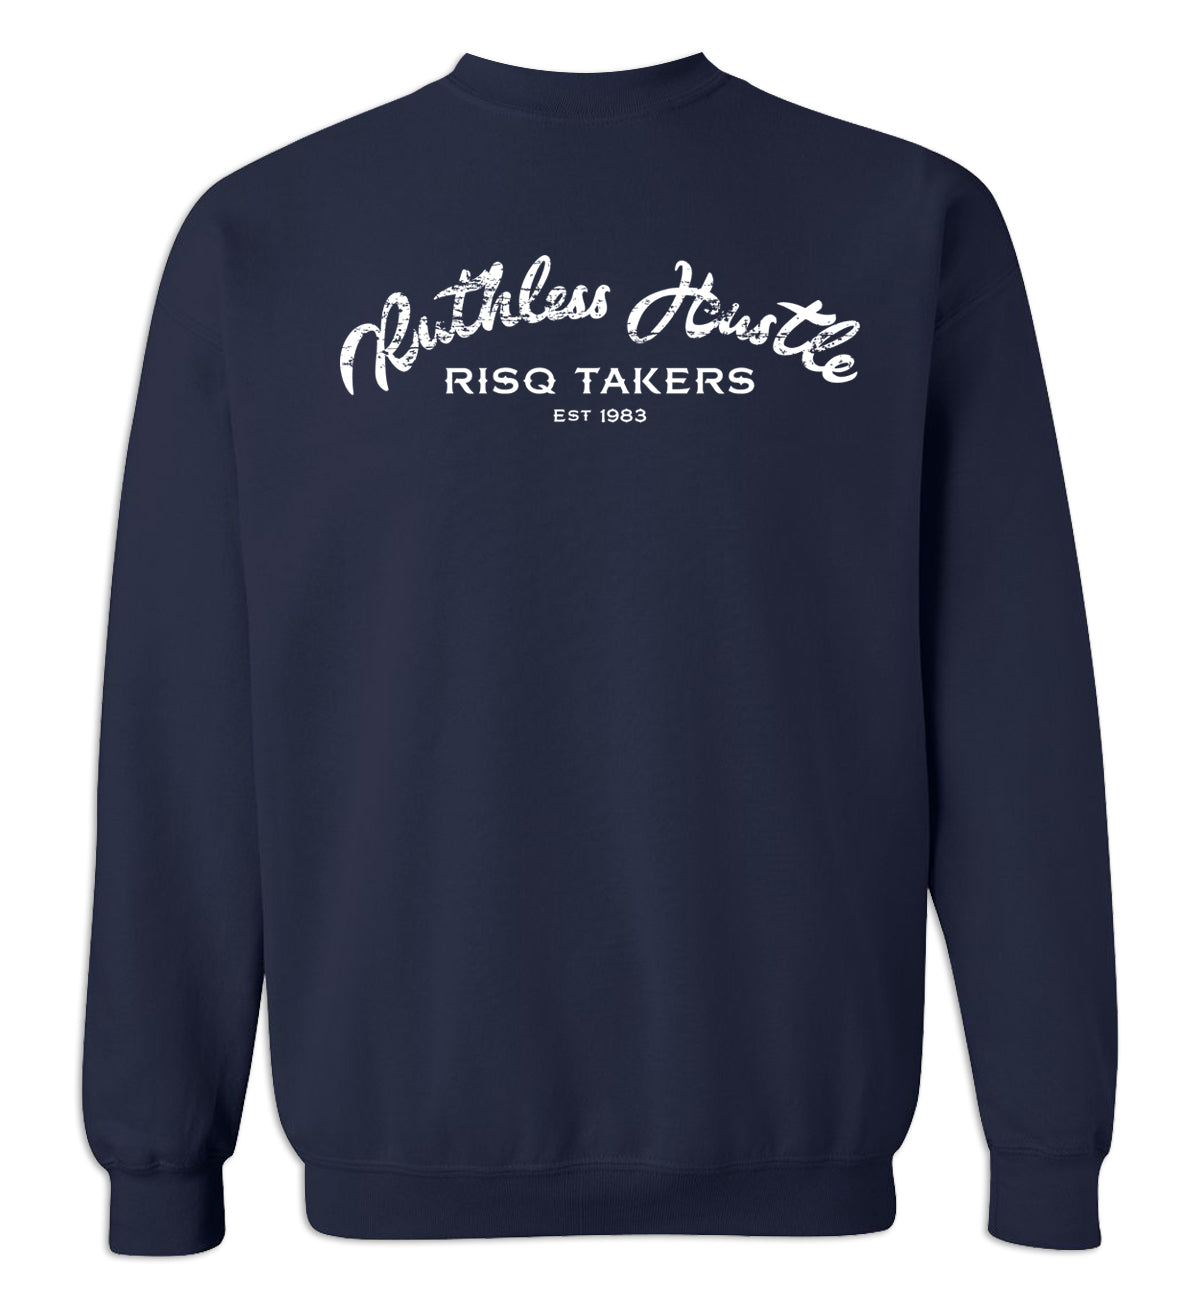 RUTHLESS HUSTLE CREWNECK